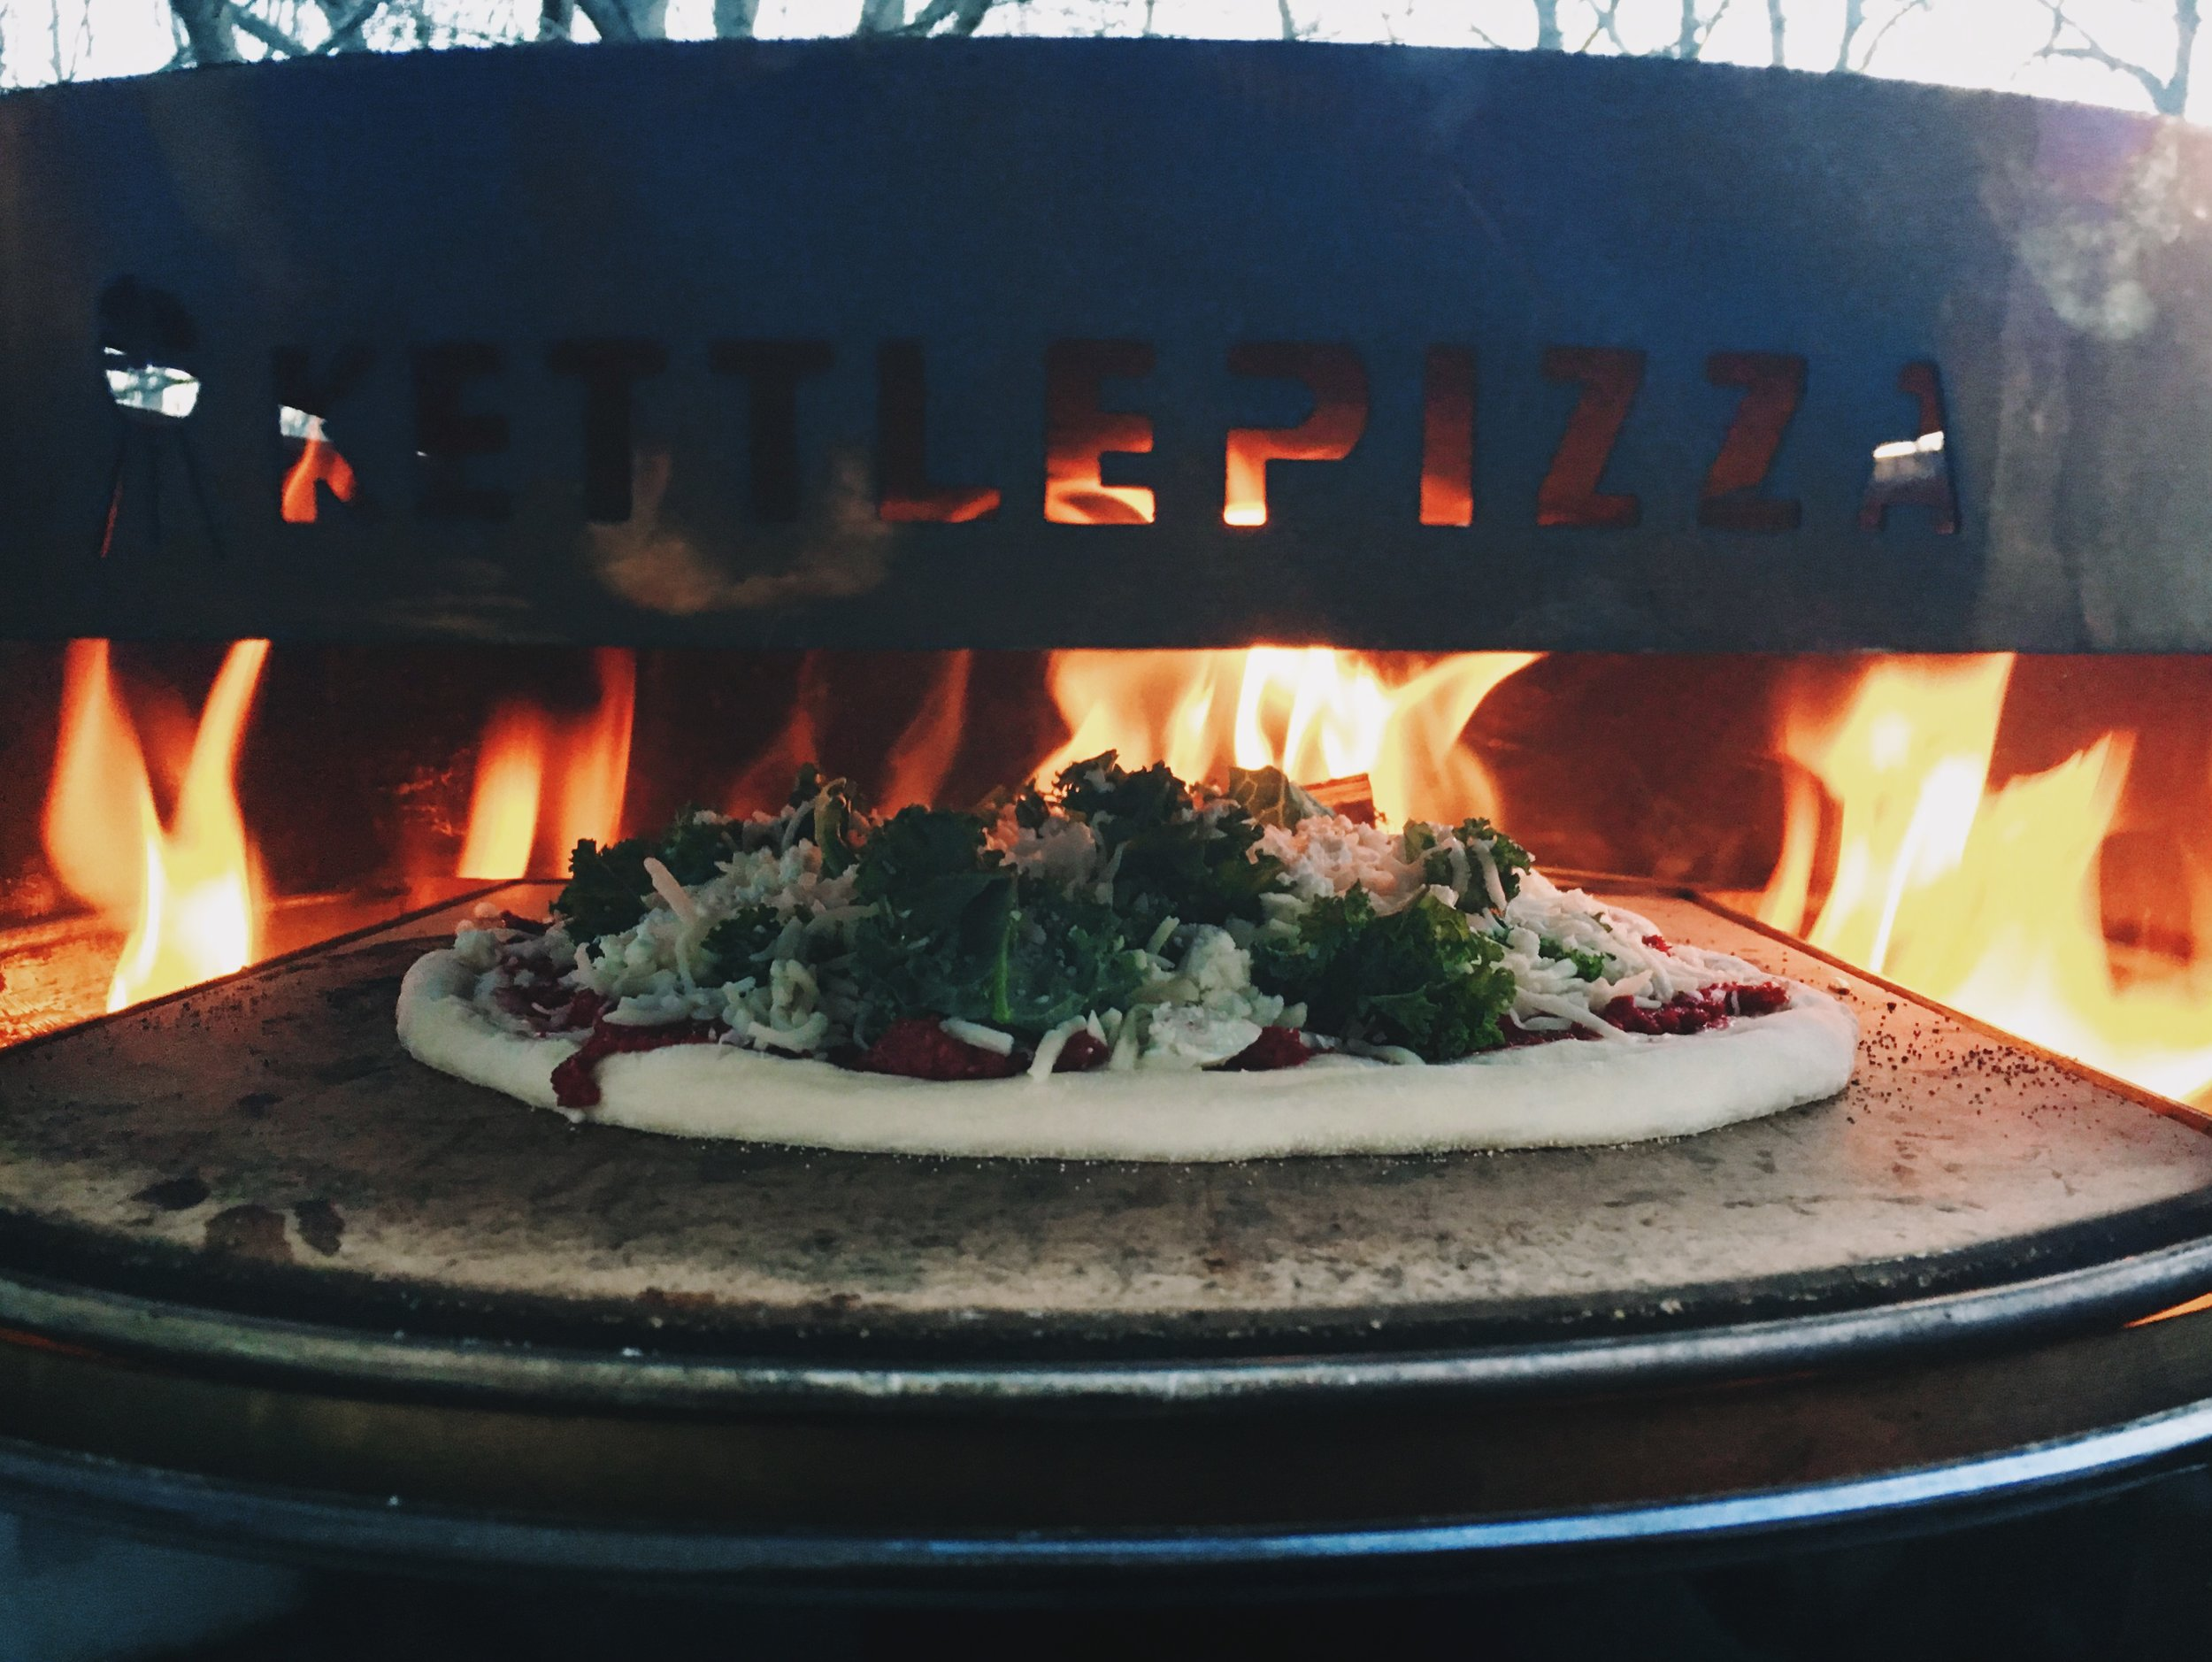 Two of my loves, pizza and fire.